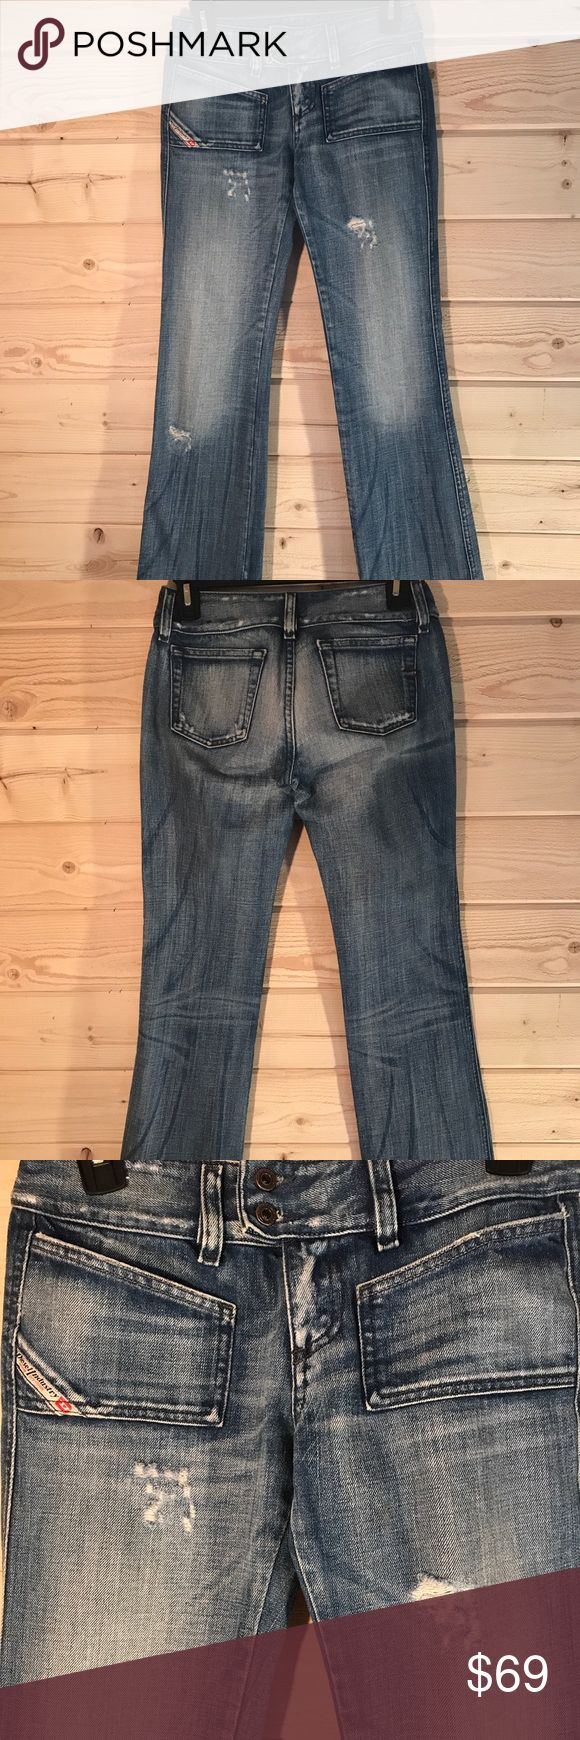 Diesel Industry Hush Destroyed Jeans See photos for distressed areas. Thick quality Denim. 100% cotton. Diesel Jeans